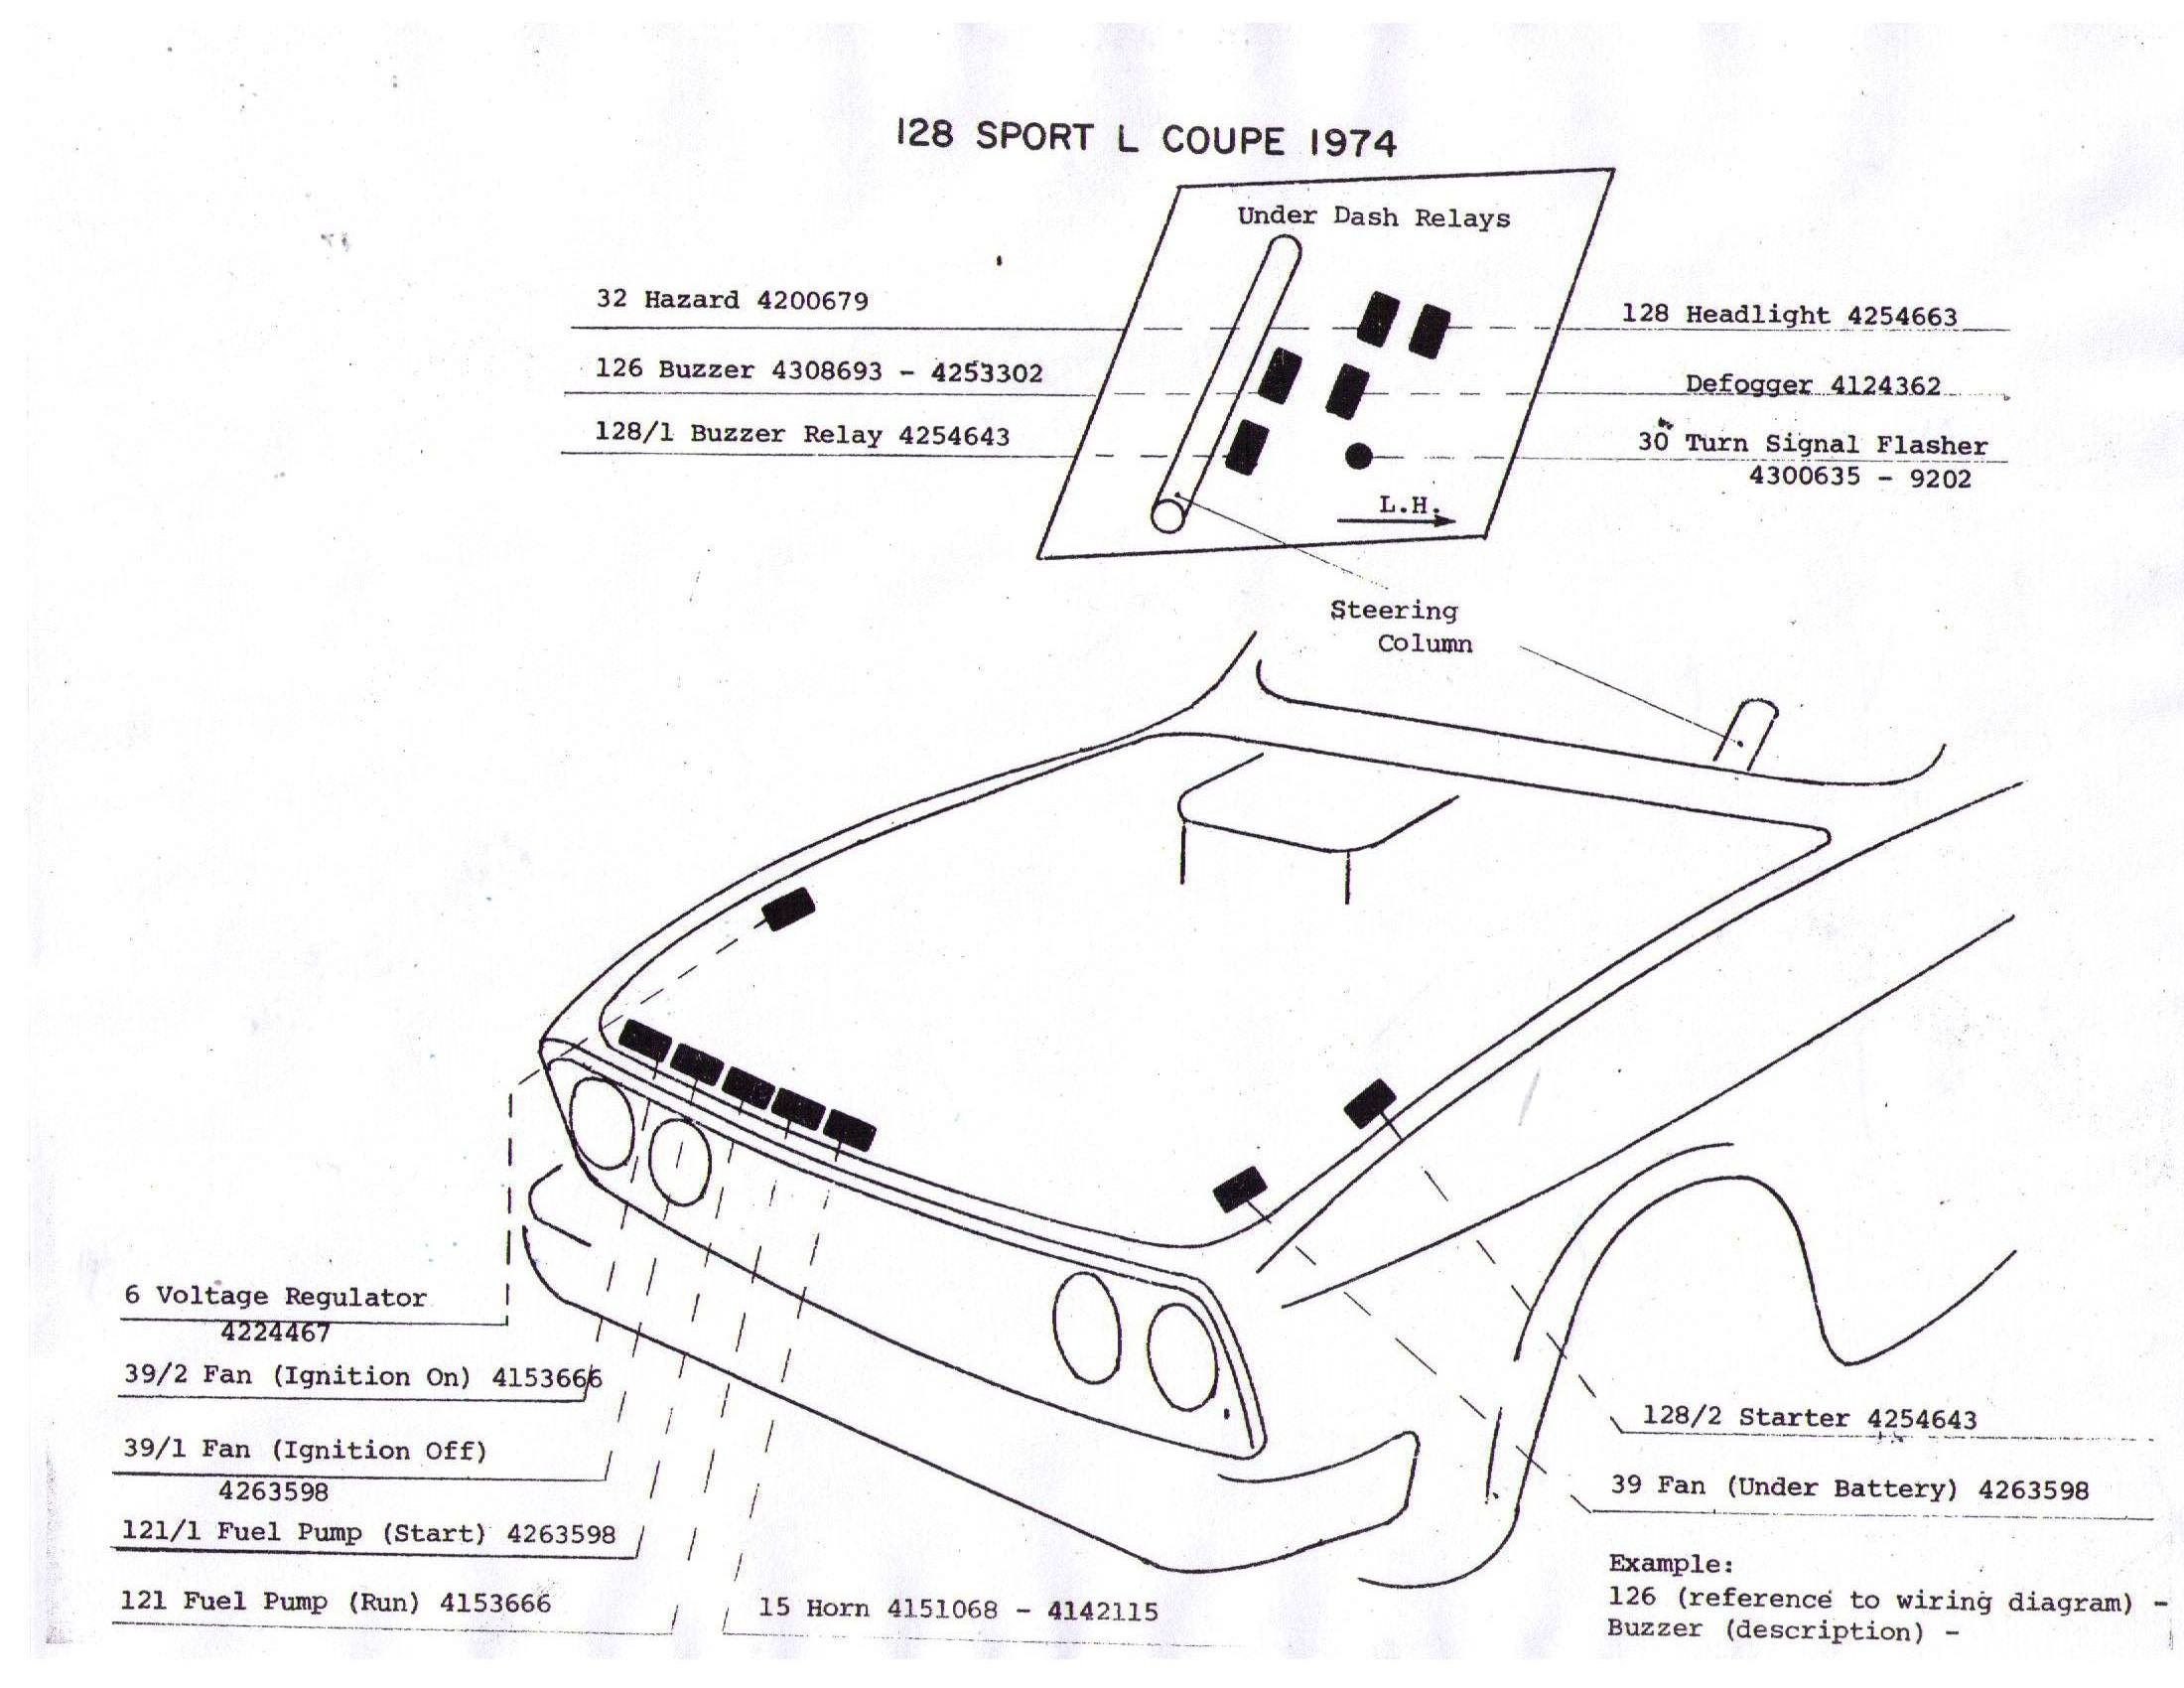 1972 c3 corvette windshield wiper diagram html